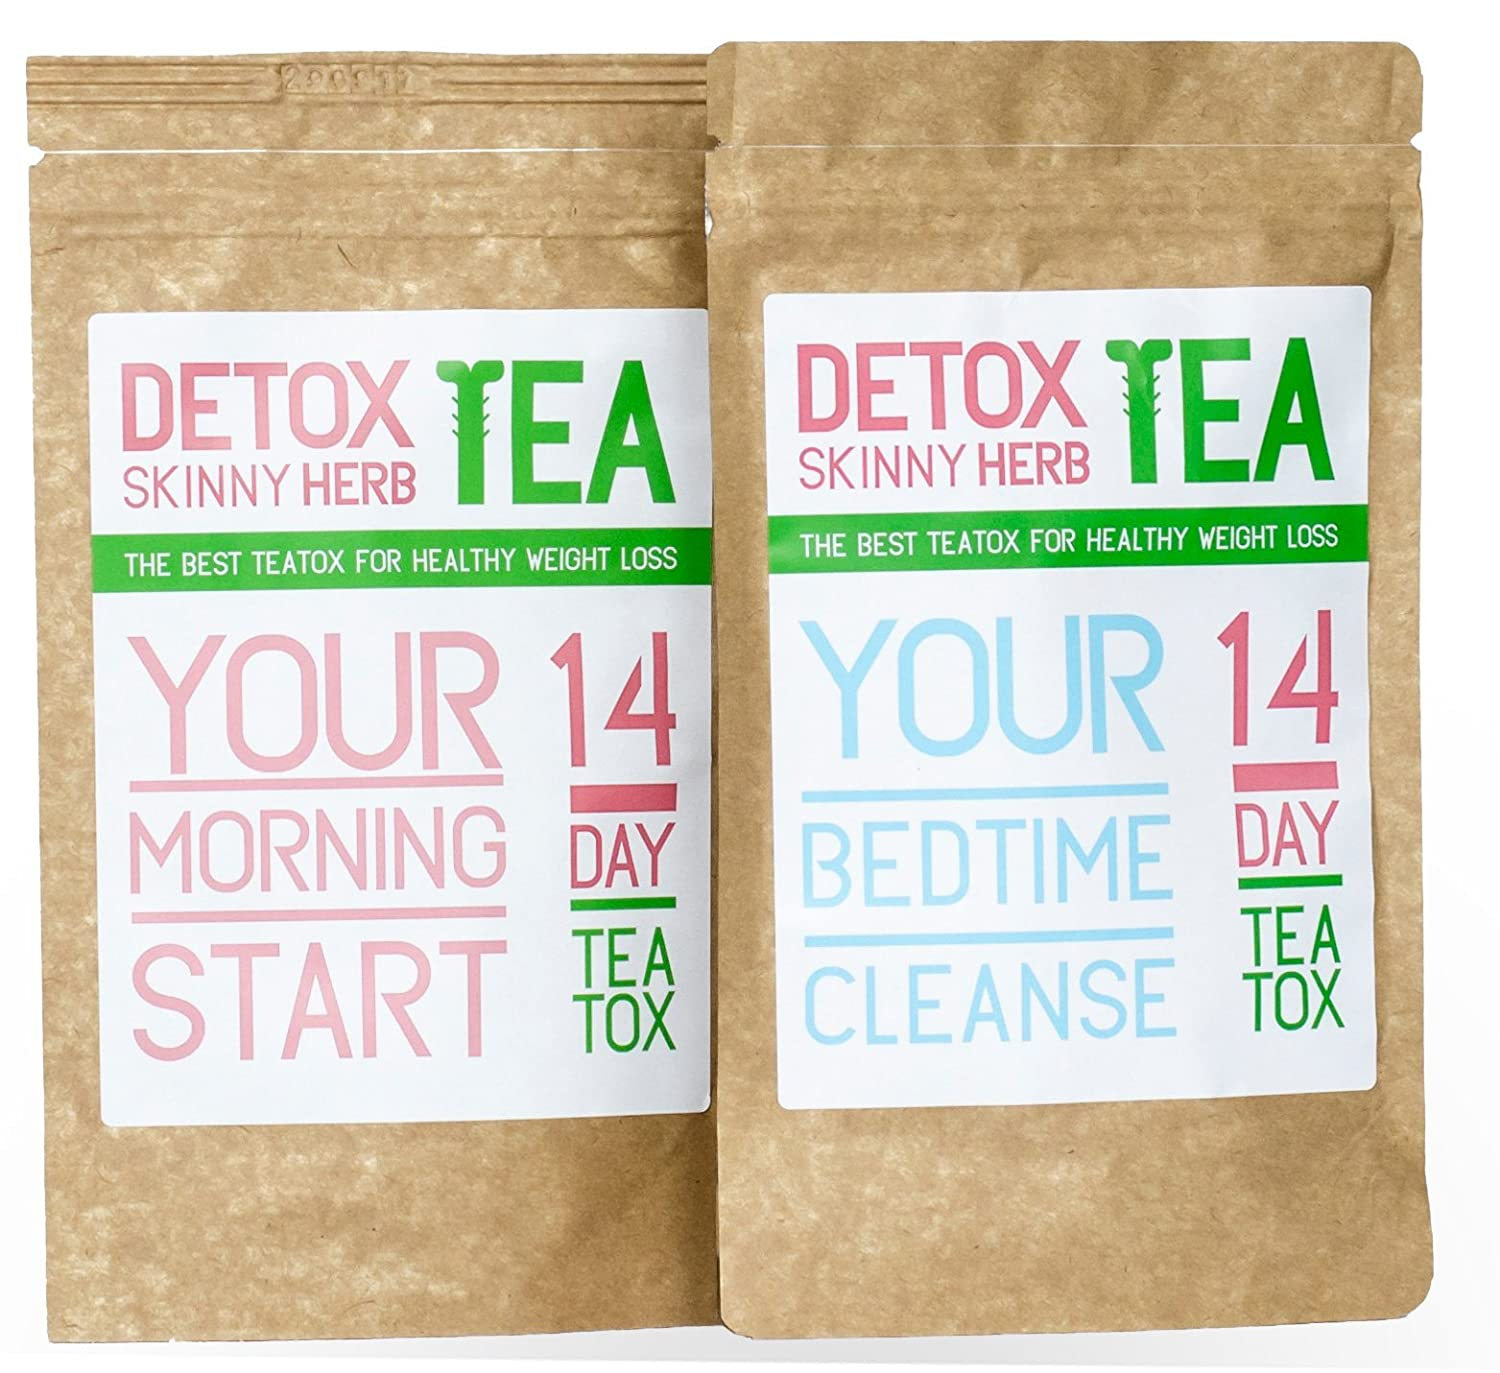 14 Days Teatox Detox Skinny Herb Tea – Effective Detox Tea, Body Cleanse, Reduce Bloating, Natural Weight Loss Tea, Boost Metabolism, Appetite Suppressant 100 NATURAL